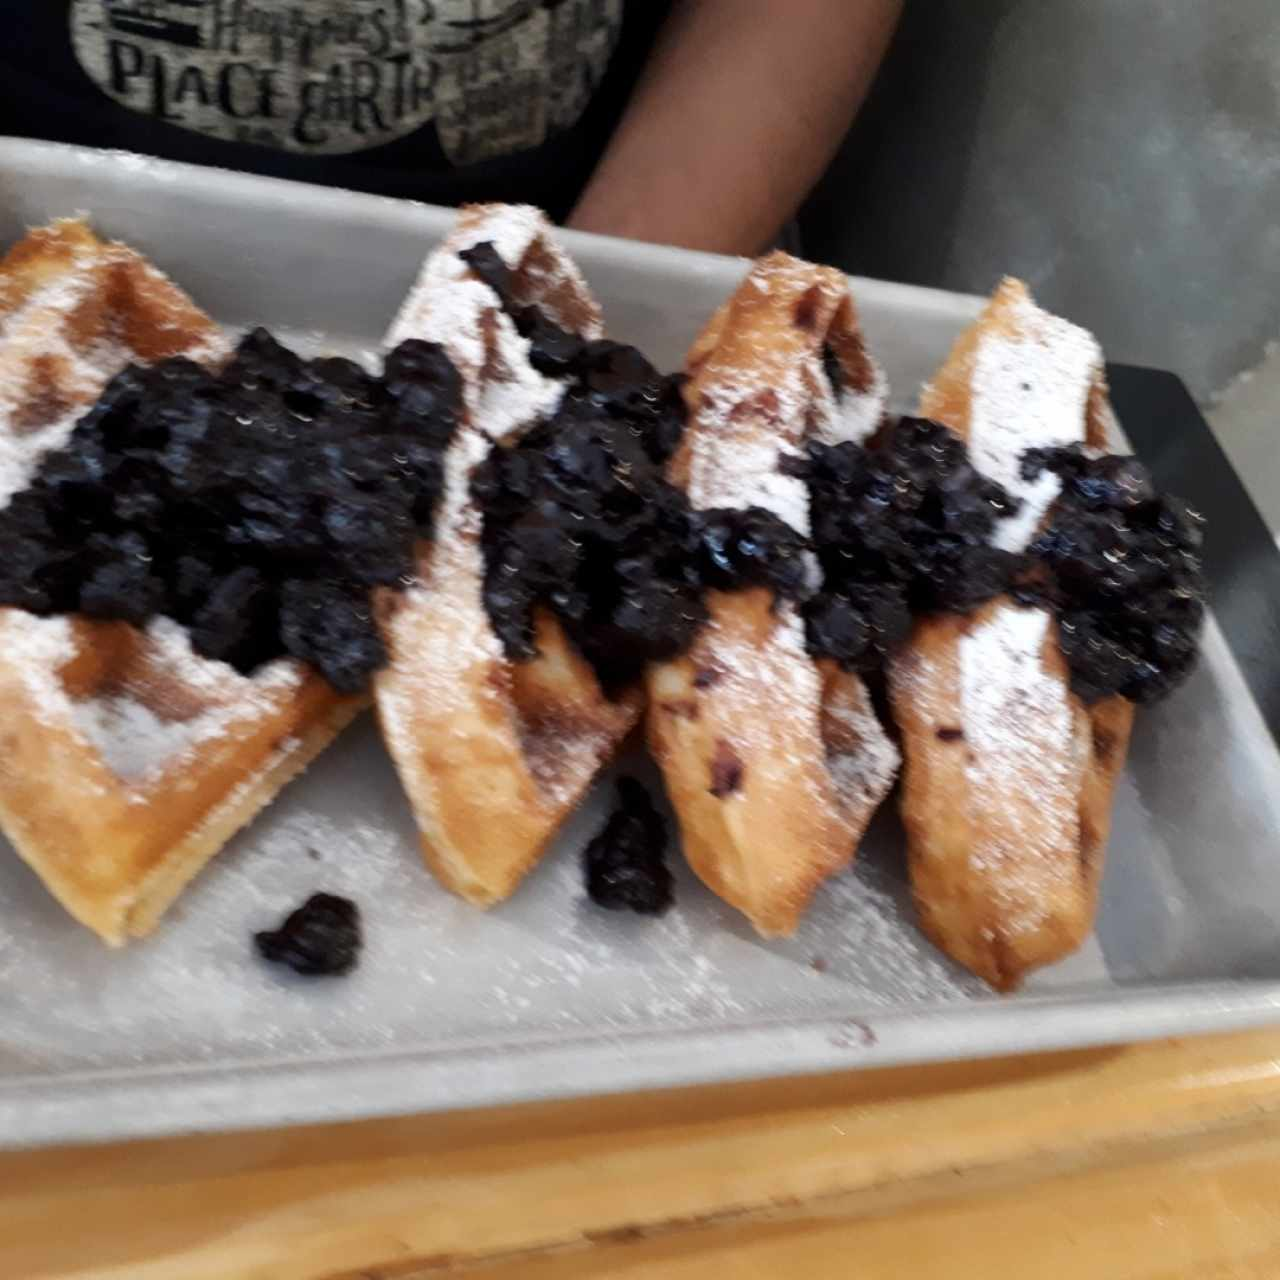 Waffles.con blueberries